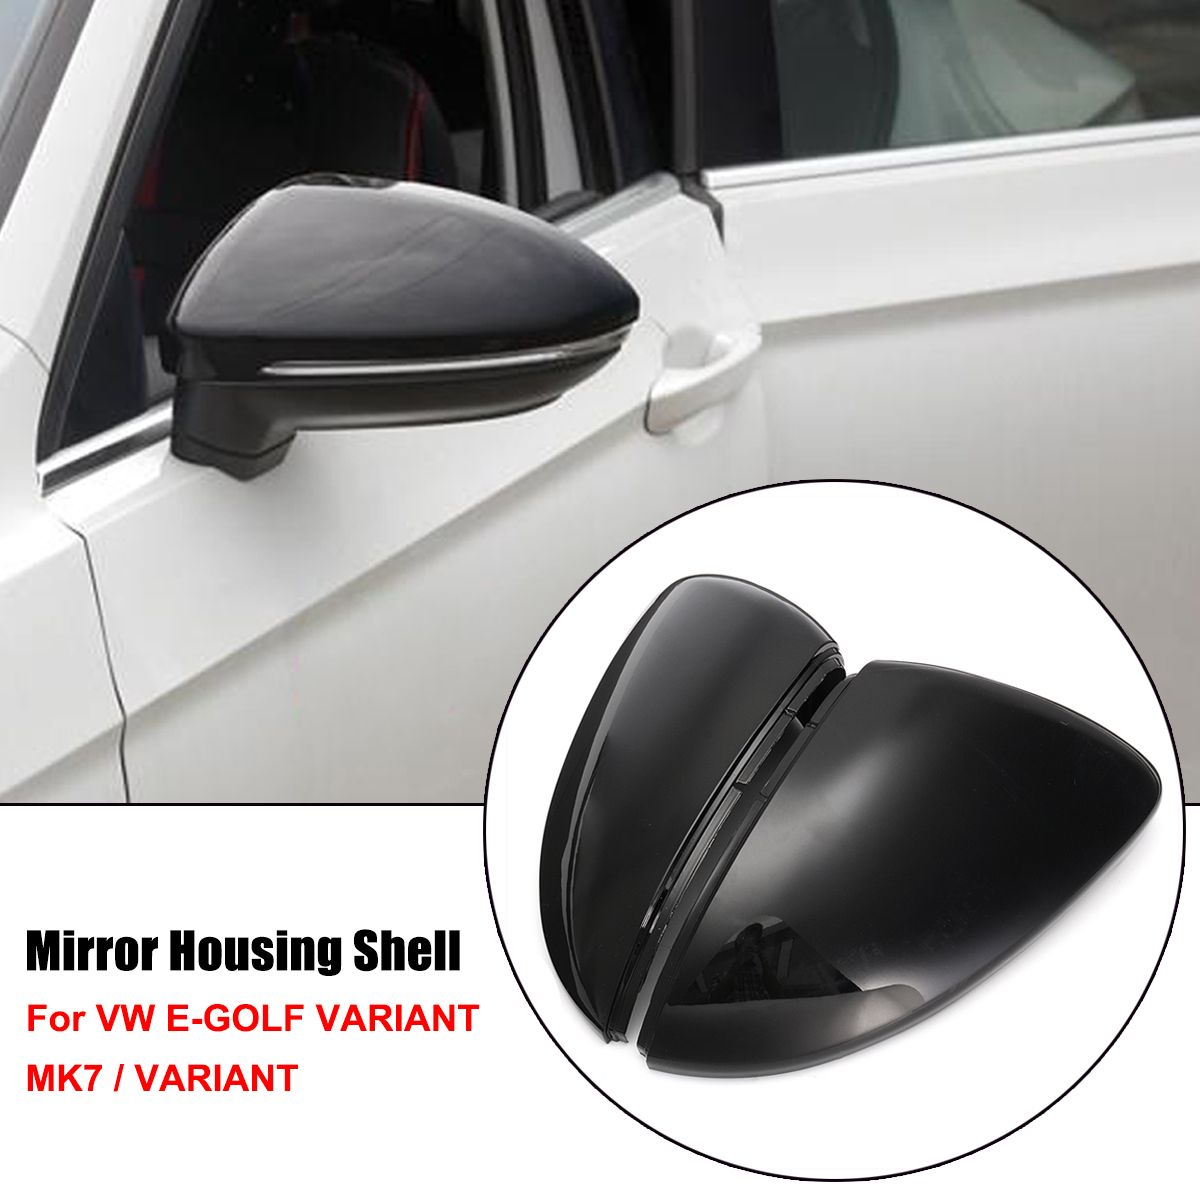 1 Pair Rearview Mirror Cover Side Wing Rear View Mirror Case Covers For VW Golf MK7 Golf Variant E-Golf L+R